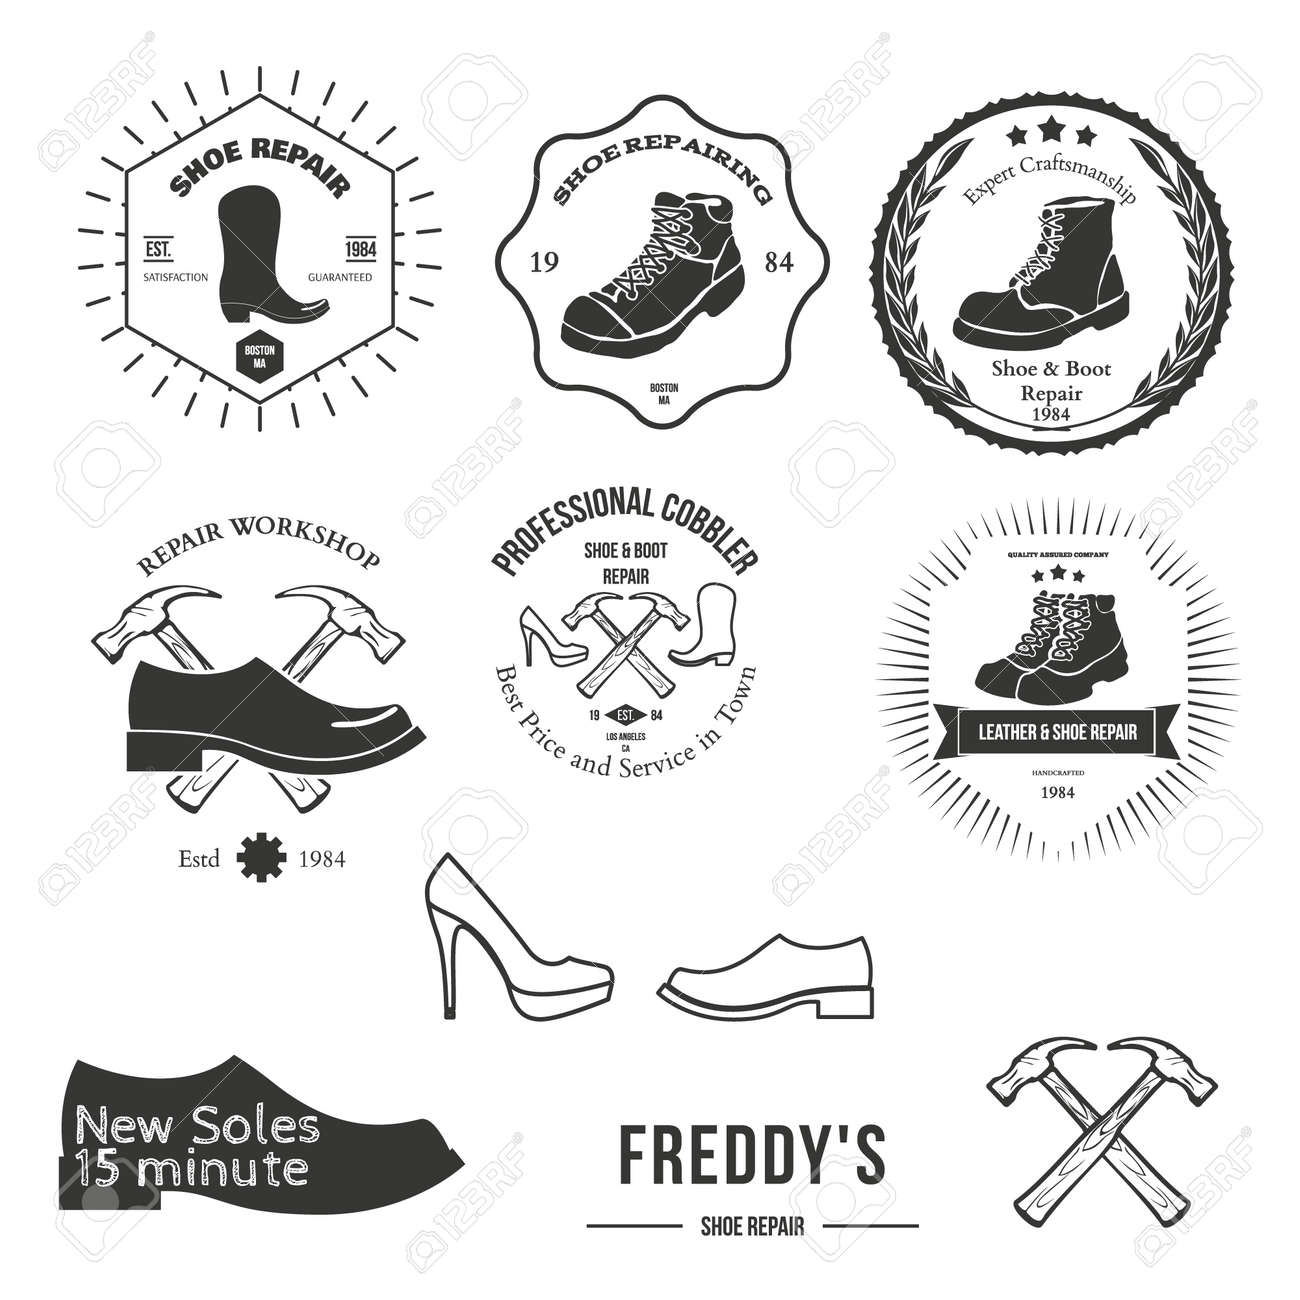 set of vintage logo badge emblem or logotype elements for shoemaker shoes shop